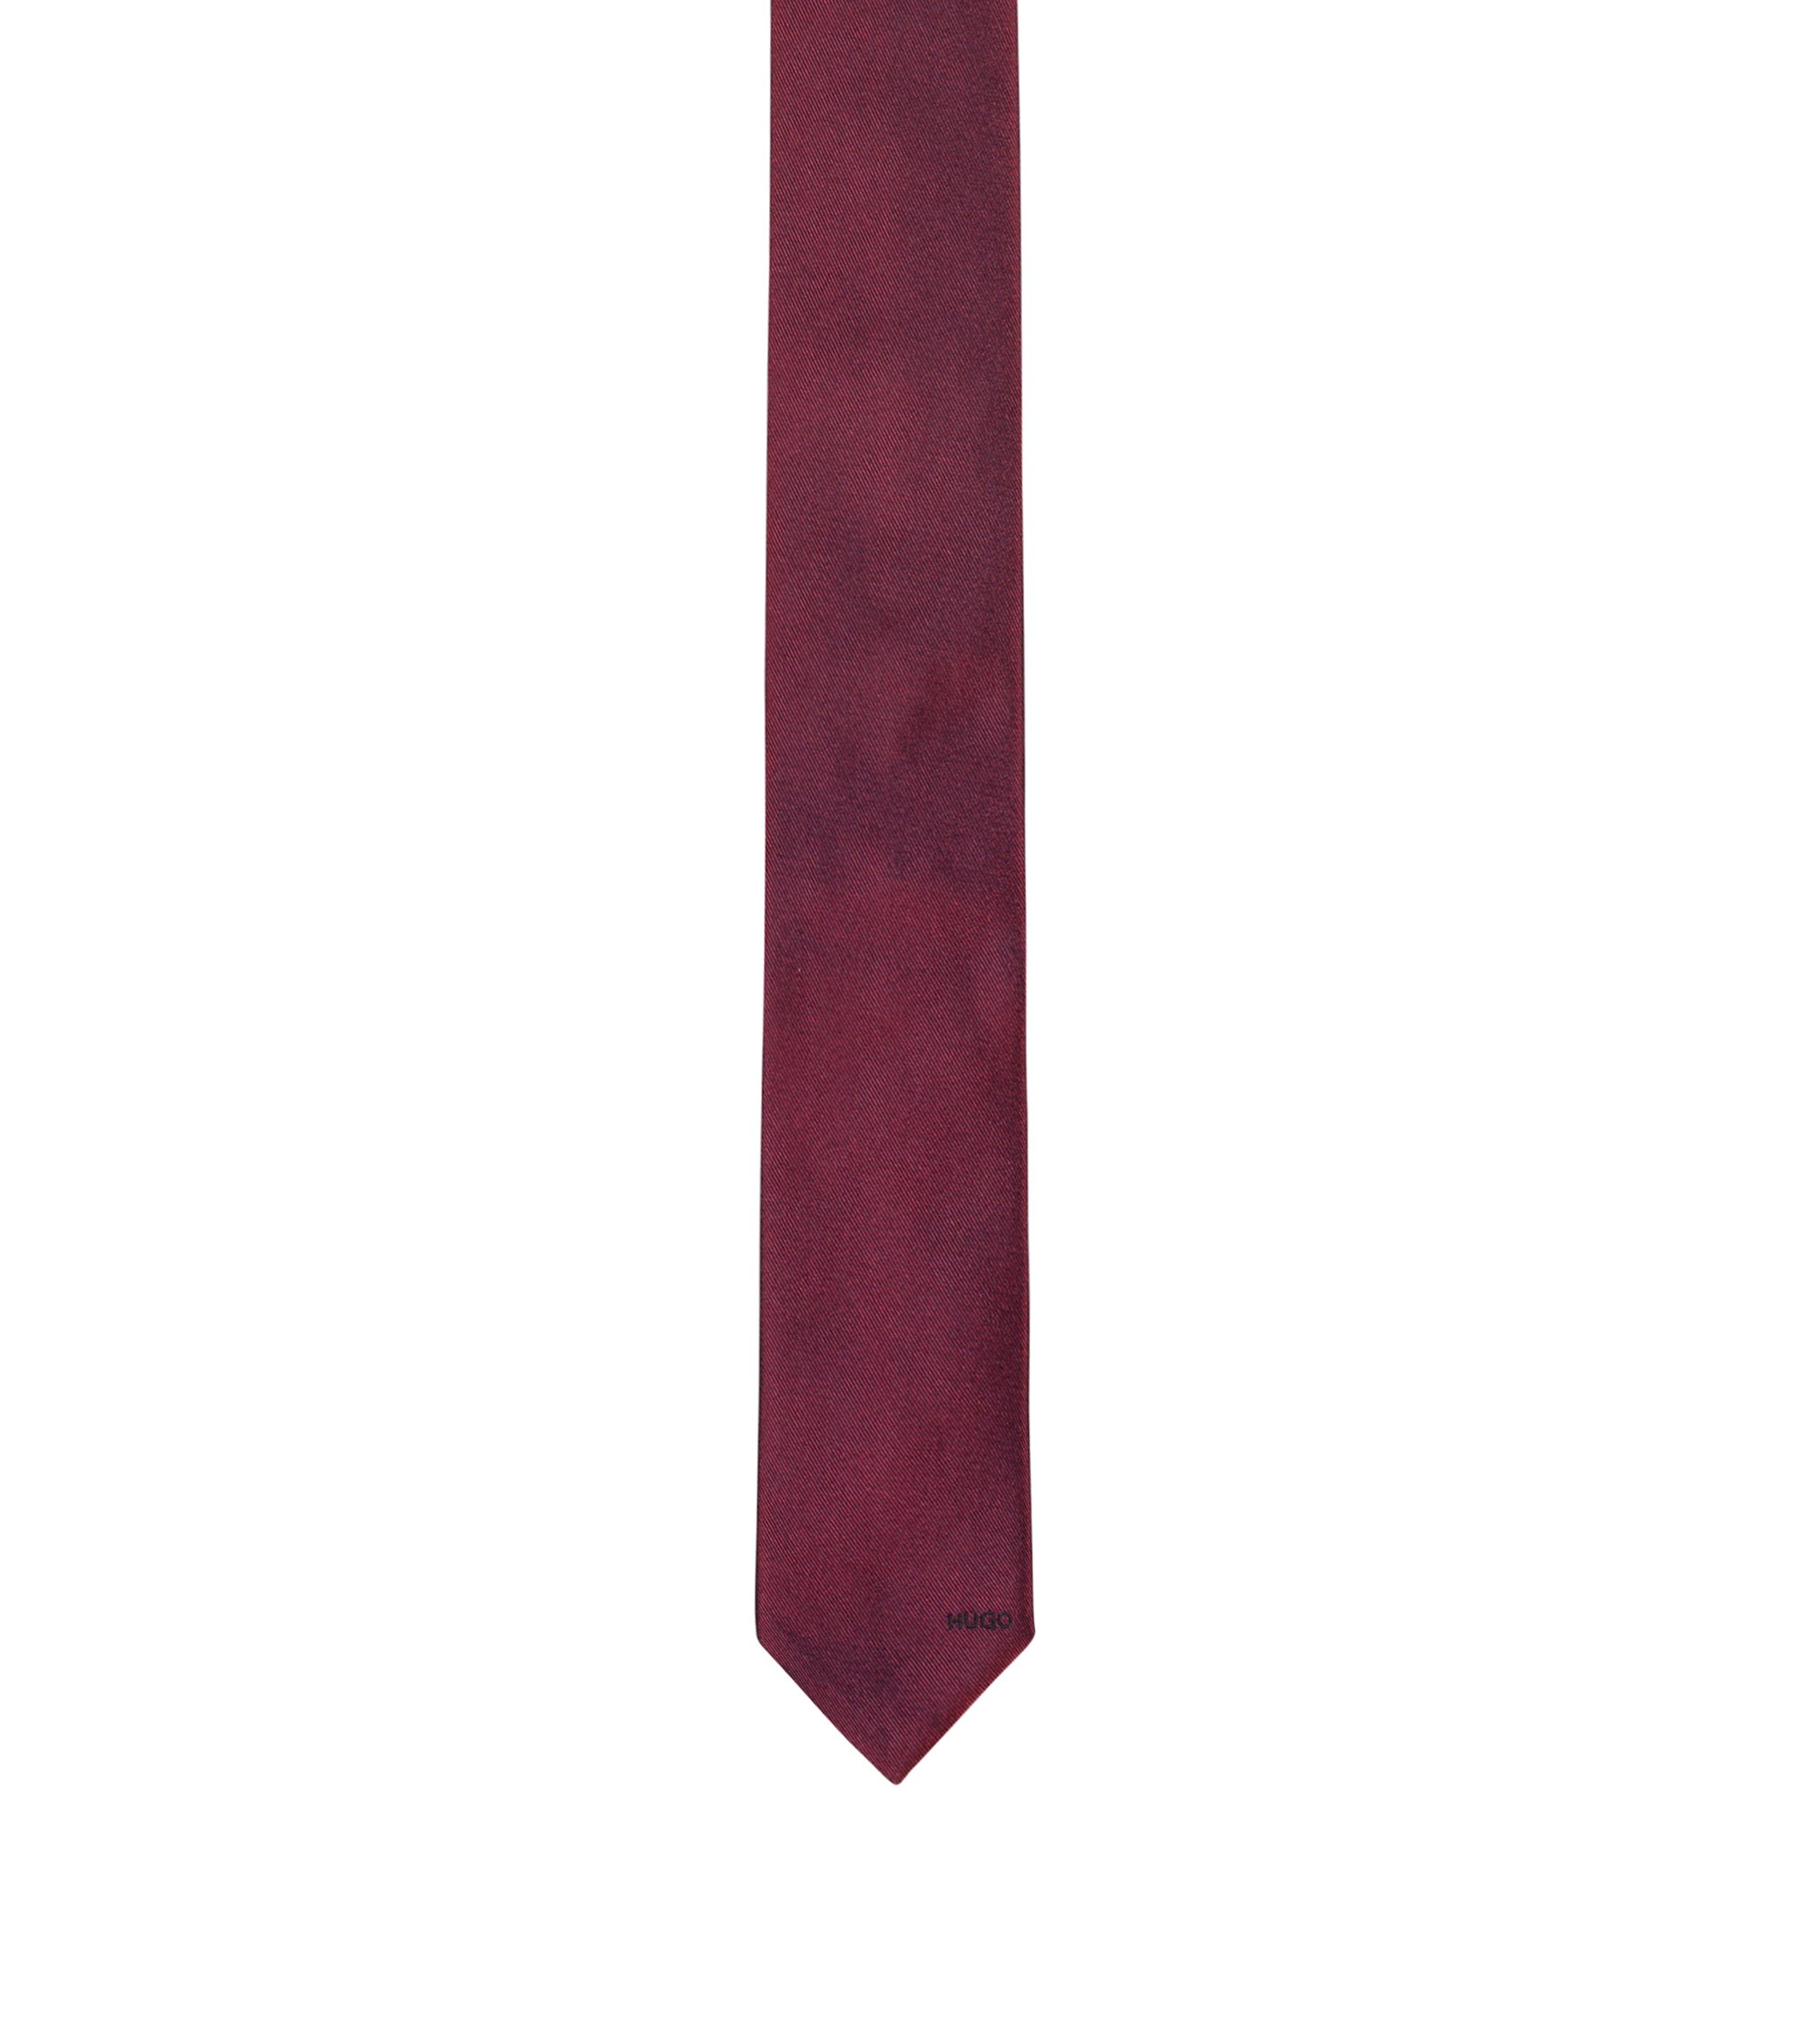 Minimalist jacquard tie in pure silk, Red